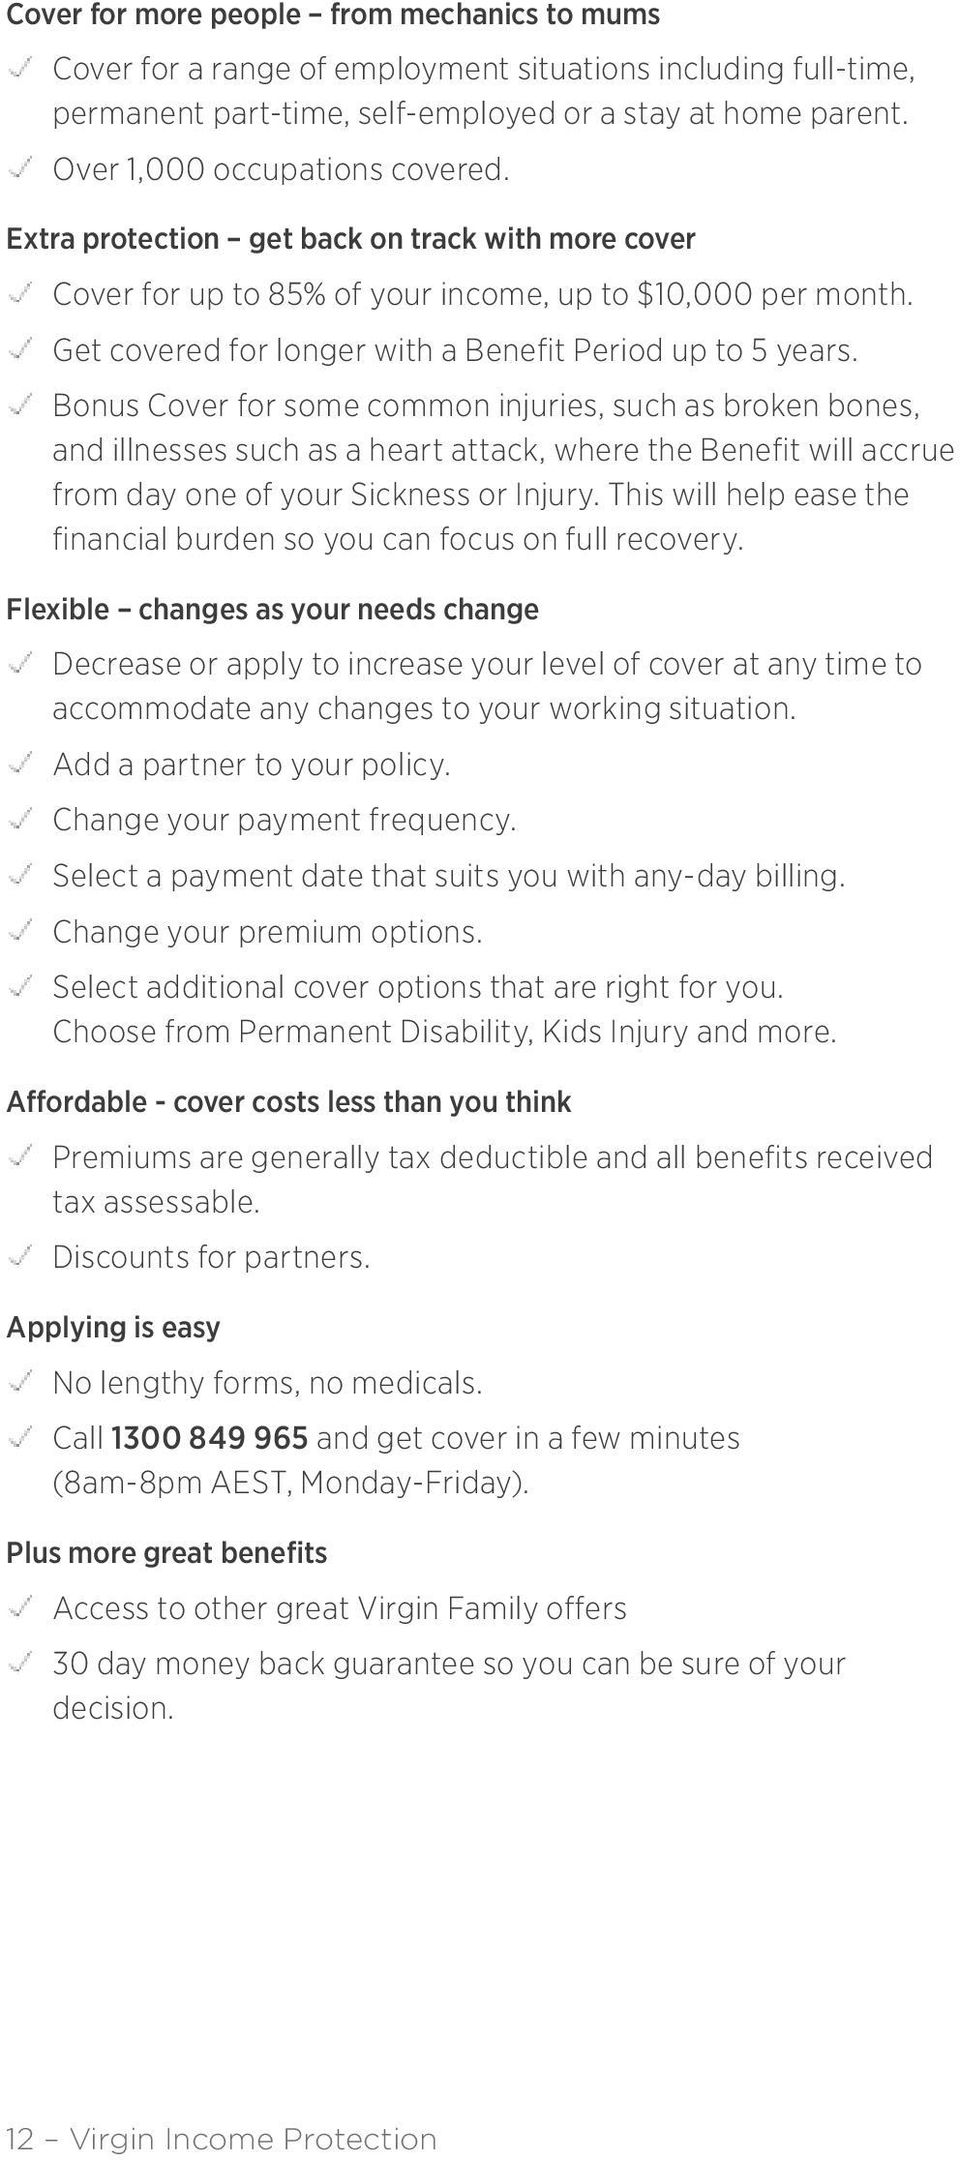 Get covered for longer with a Benefit Period up to 5 years.